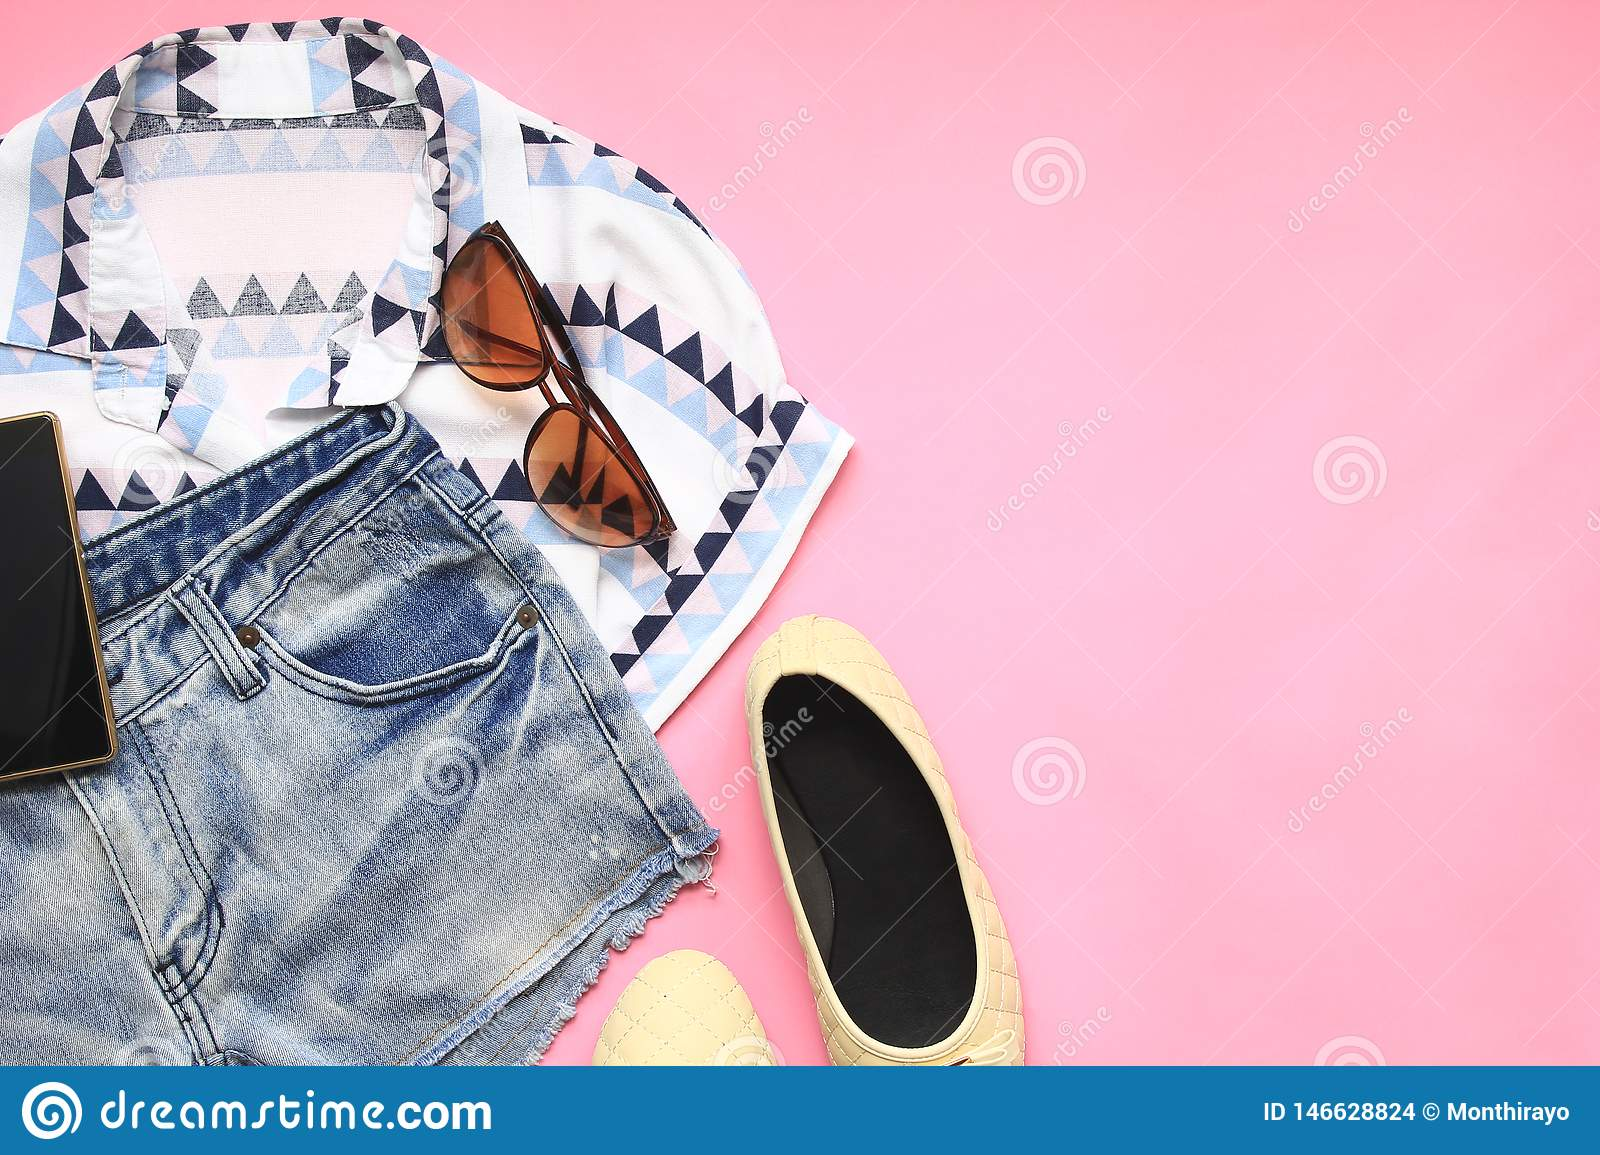 Top View Of Women Fashion Stylish Clothes Of Travel Accessories On Colorful Background Stock Photo Image Of Dress Casual 146628824